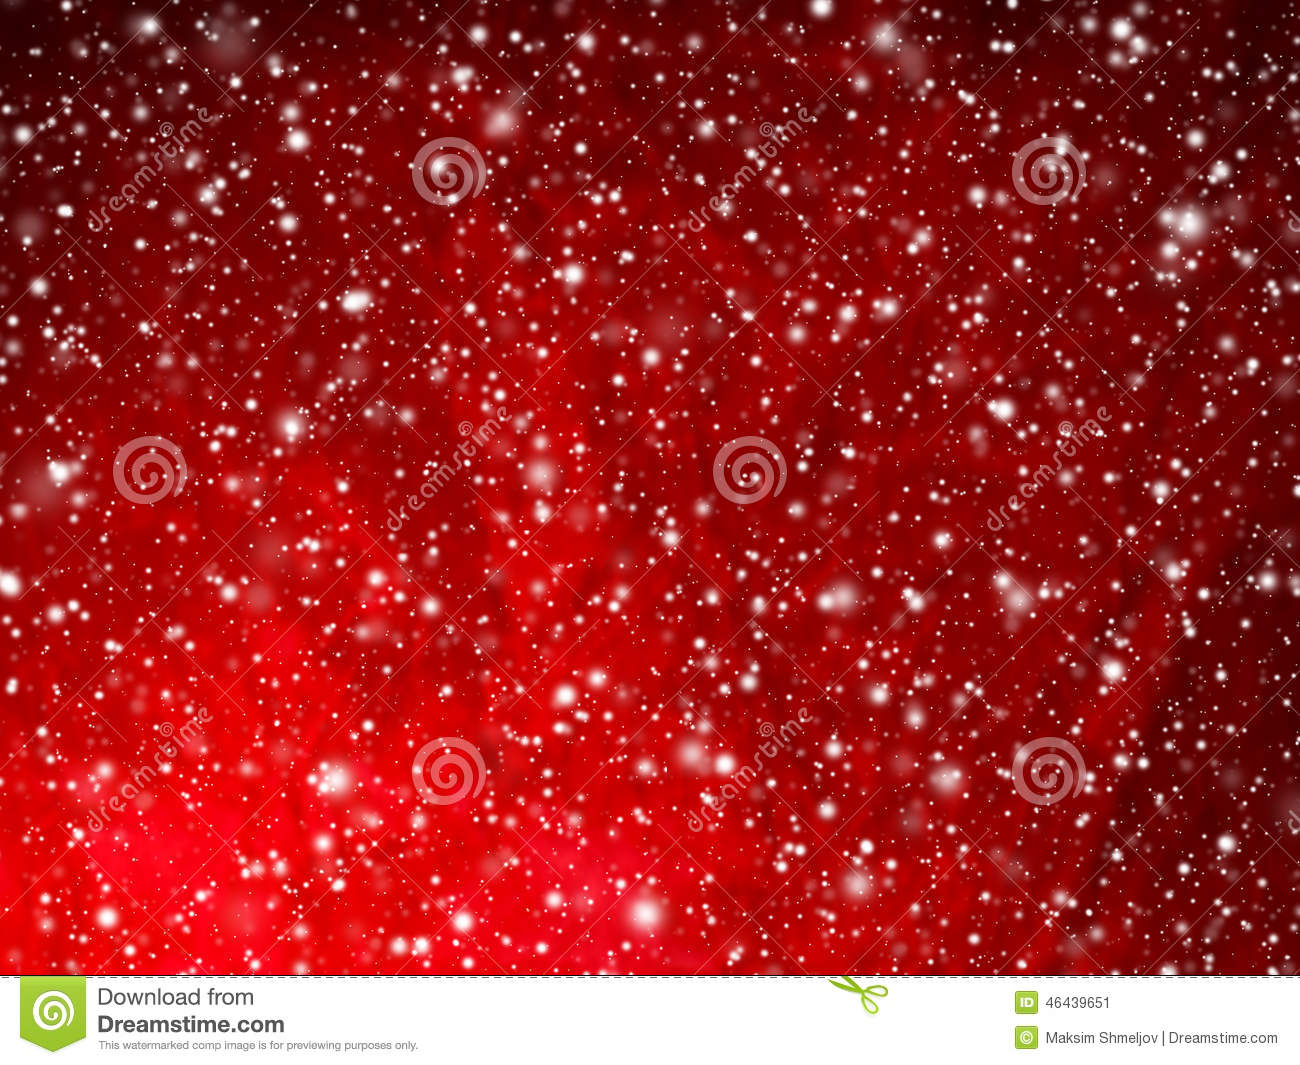 Snow Falling Video Wallpaper Bright Red Abstract Christmas Background With Falling Snow